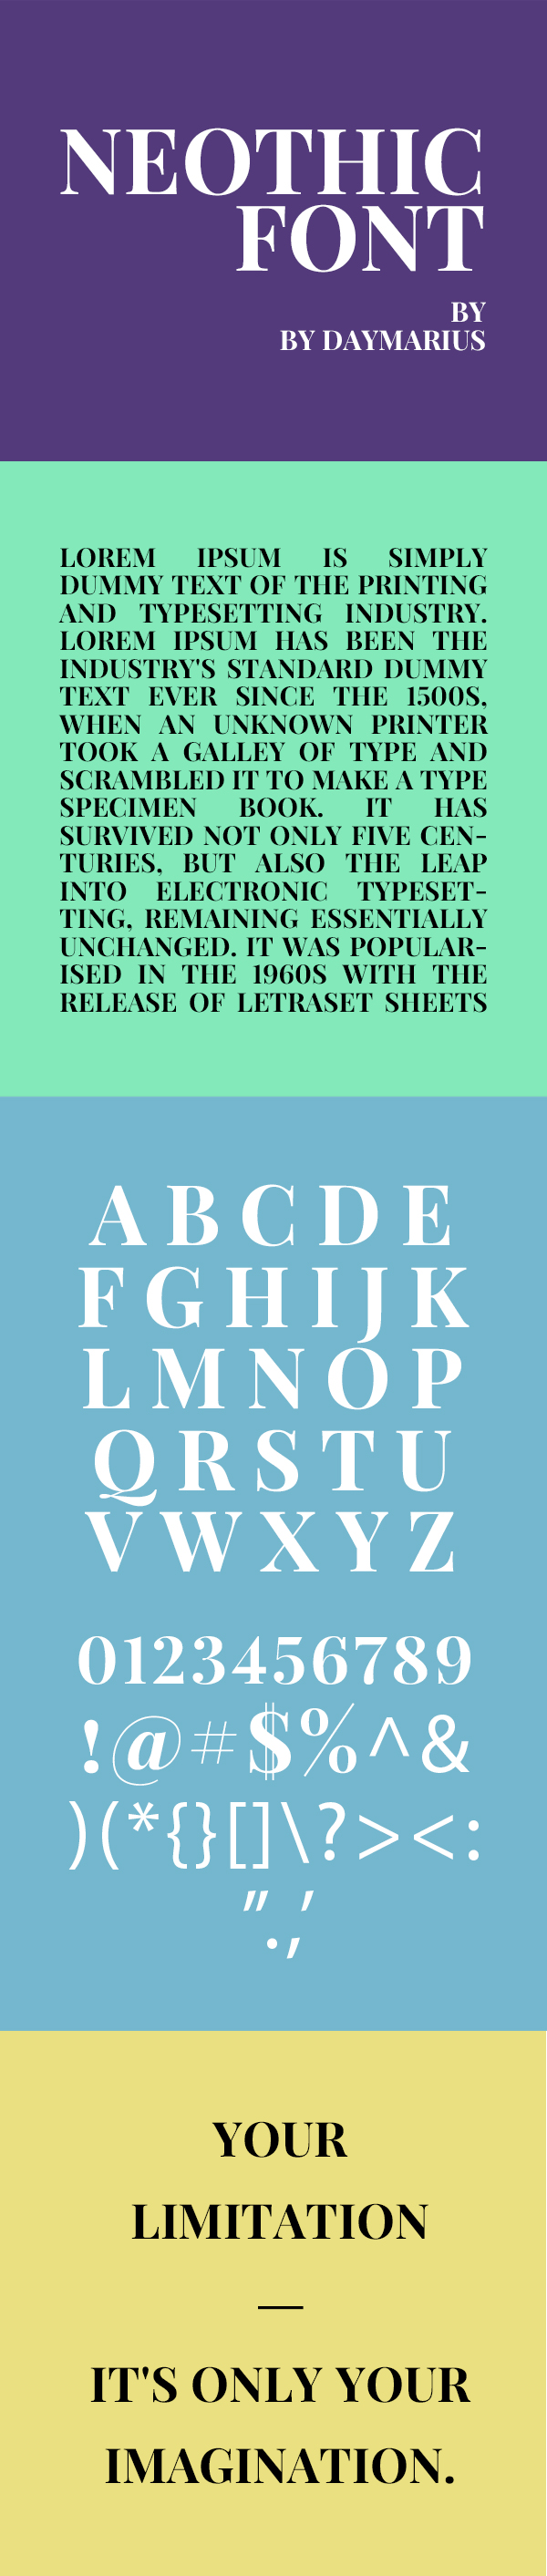 Neothic Free Font